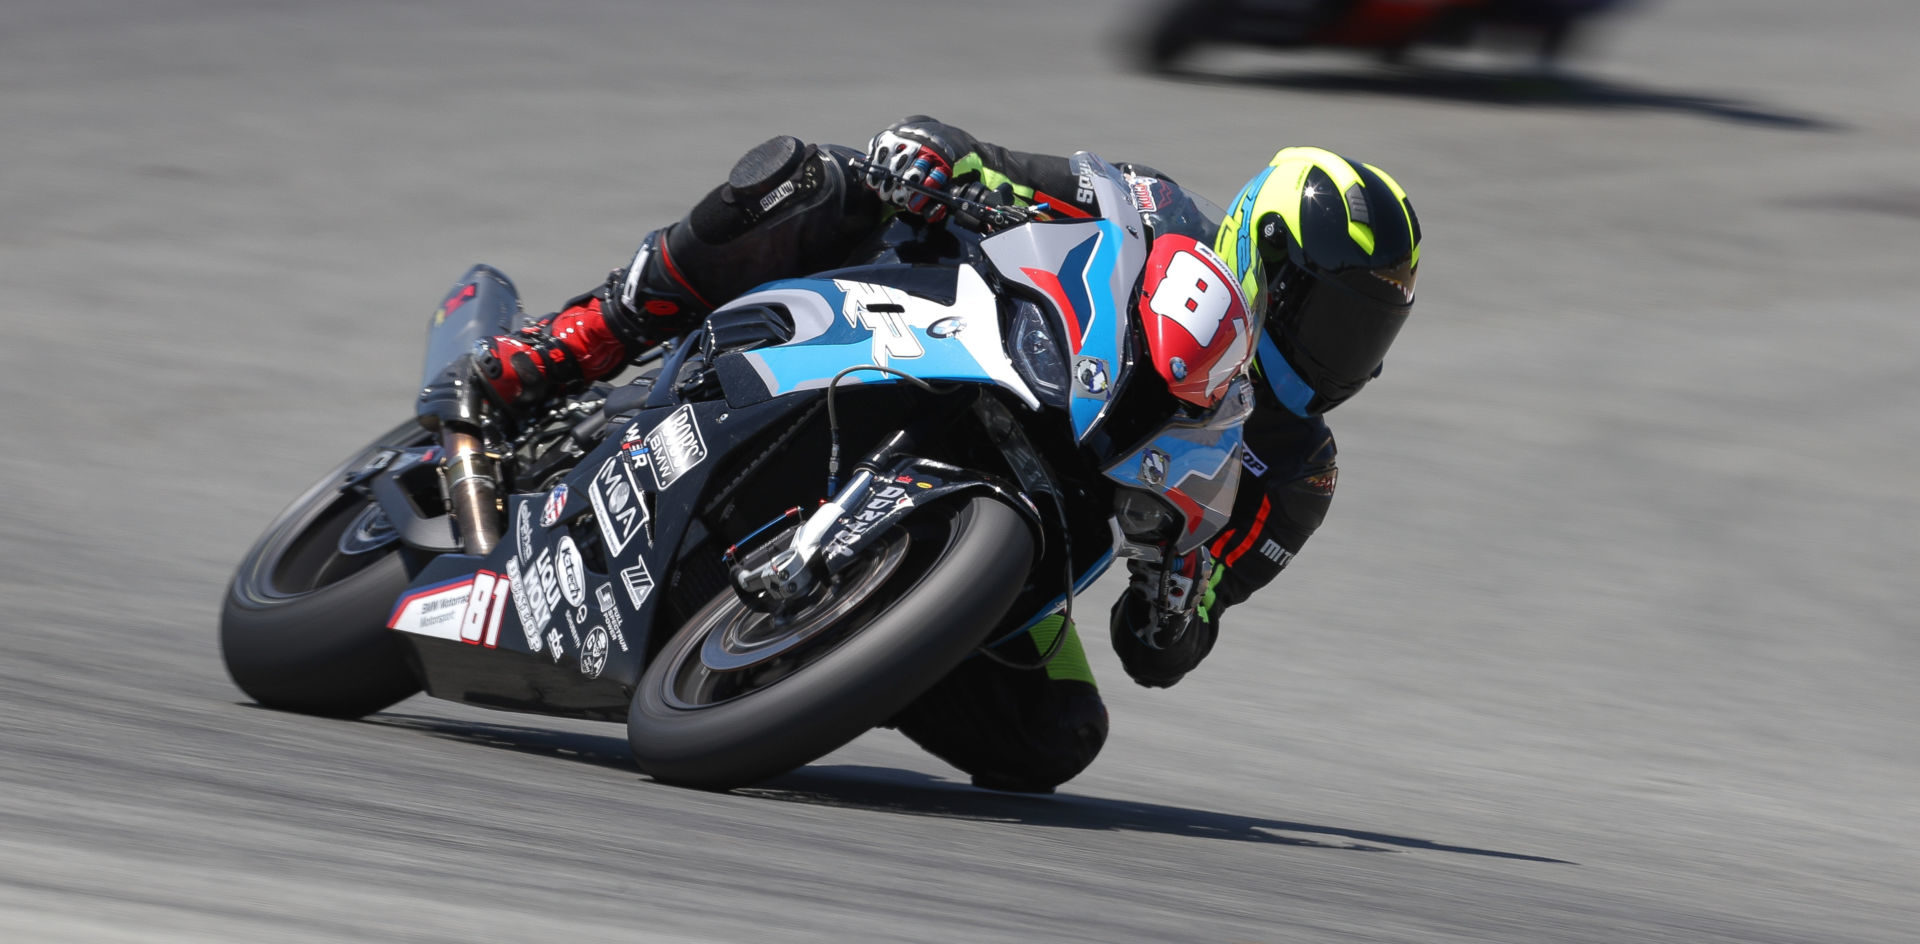 Jeremy Cook in action at Laguna Seca. Photo by Brian J. Nelson.